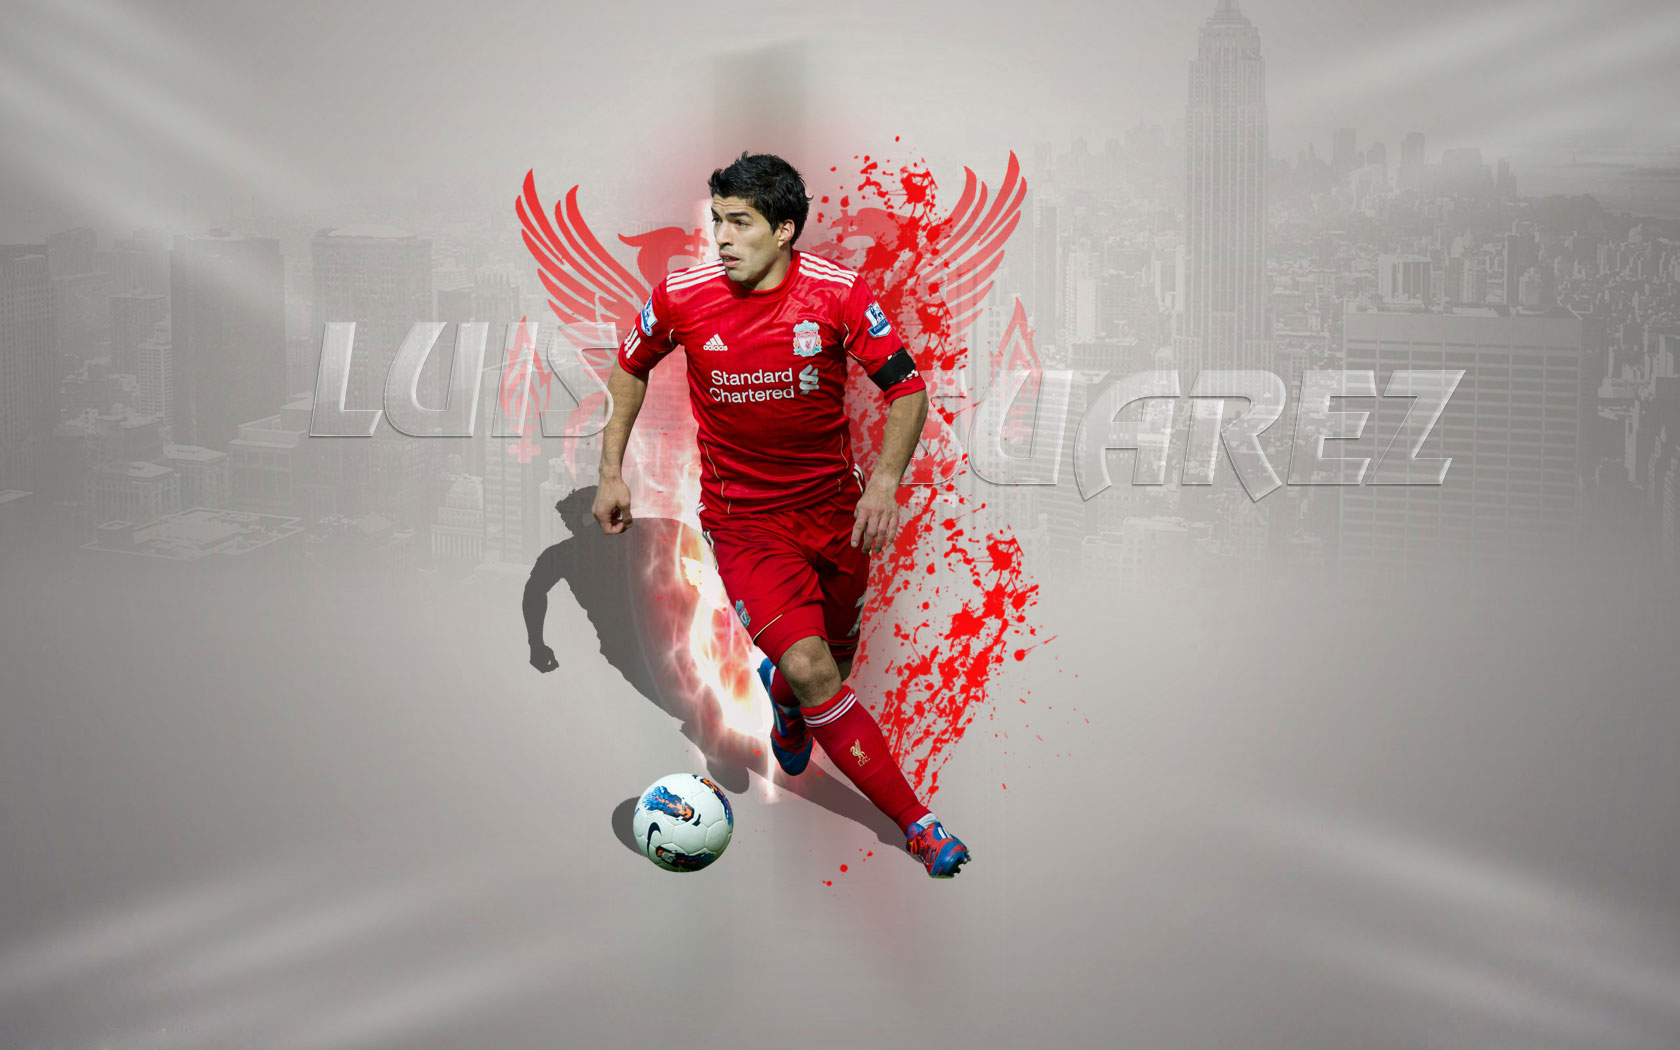 Luis Suarez Football Wallpaper Backgrounds and Picture 1680x1050